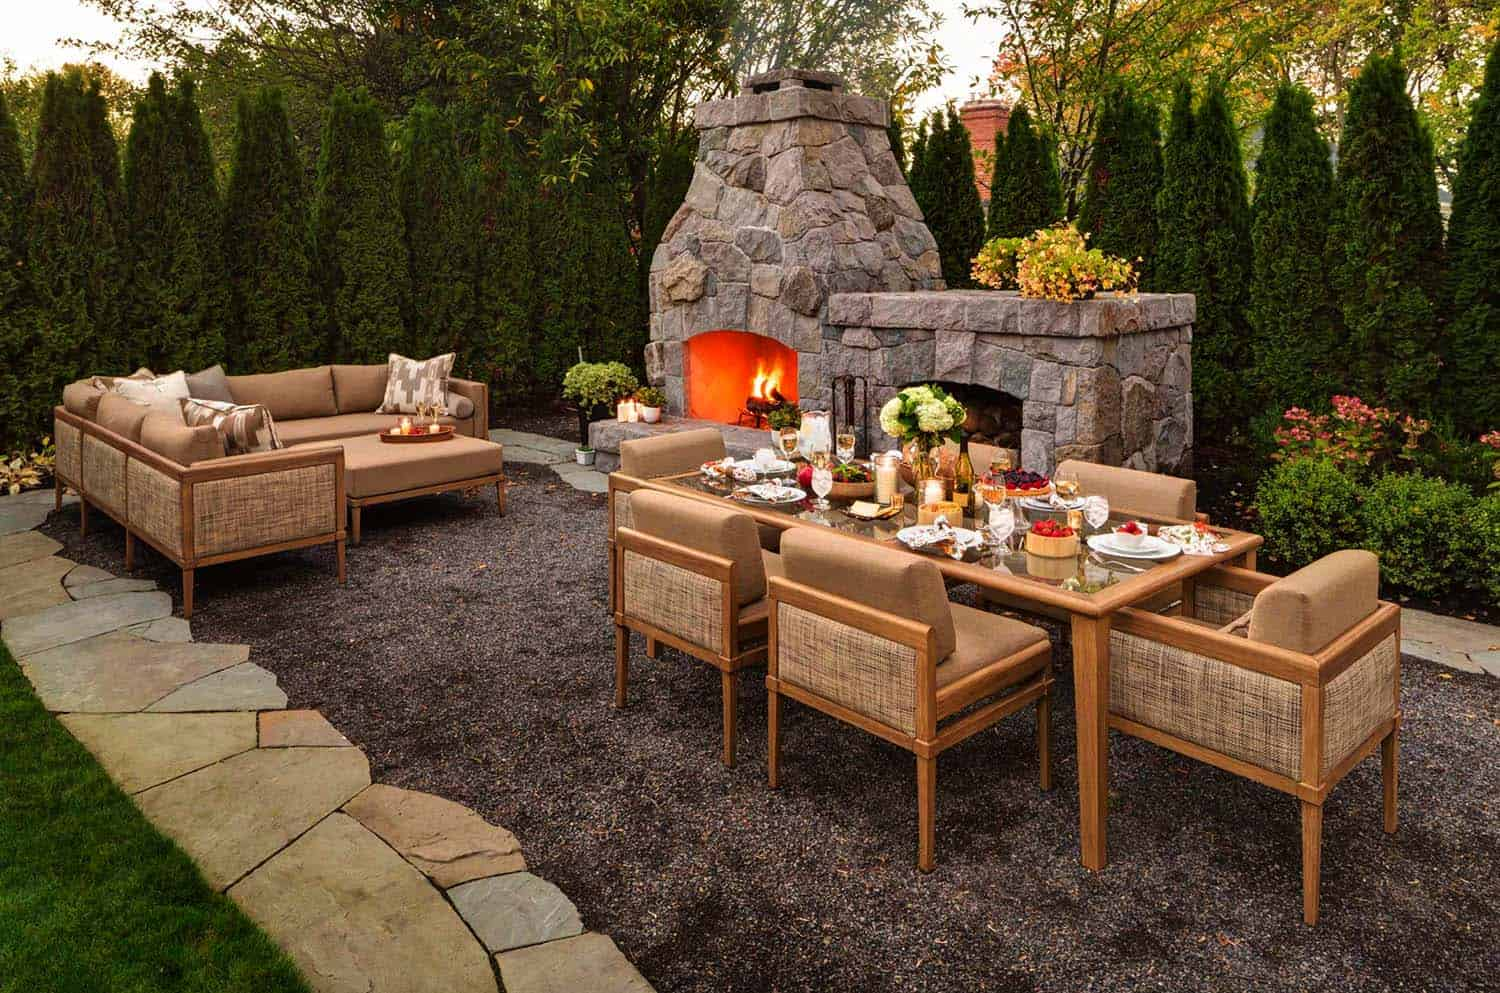 25+ Fabulous outdoor patio ideas to get ready for spring ... on backyard gazebo ideas, backyard pool ideas, backyard construction ideas, backyard fence ideas, backyard furniture ideas, backyard seating ideas, retaining wall ideas, small backyard ideas, garage ideas, driveway ideas, backyard sunroom ideas, backyard hot tub ideas, backyard landscape ideas, fireplace ideas, backyard pergola ideas, inexpensive backyard ideas, backyard courtyard ideas, backyard shed ideas, backyard concrete ideas, deck ideas,